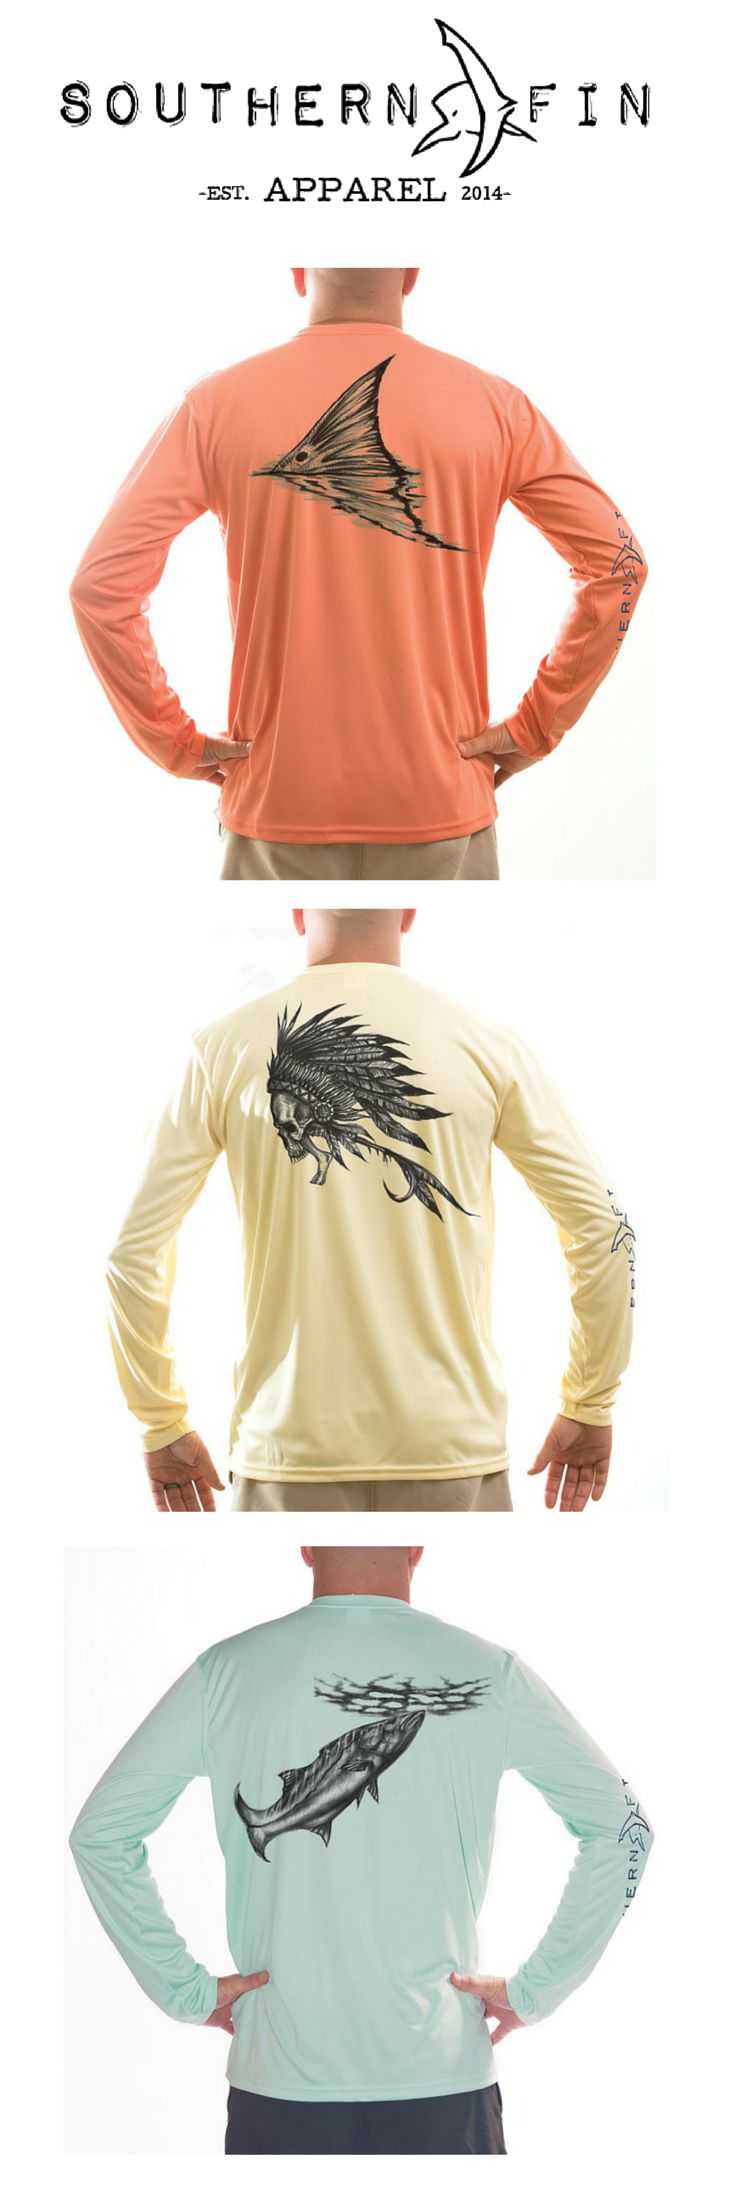 100% Microfiber Performance Long Sleeve Fishing Shirts. UPF 50+ and Moisture Control Technology.